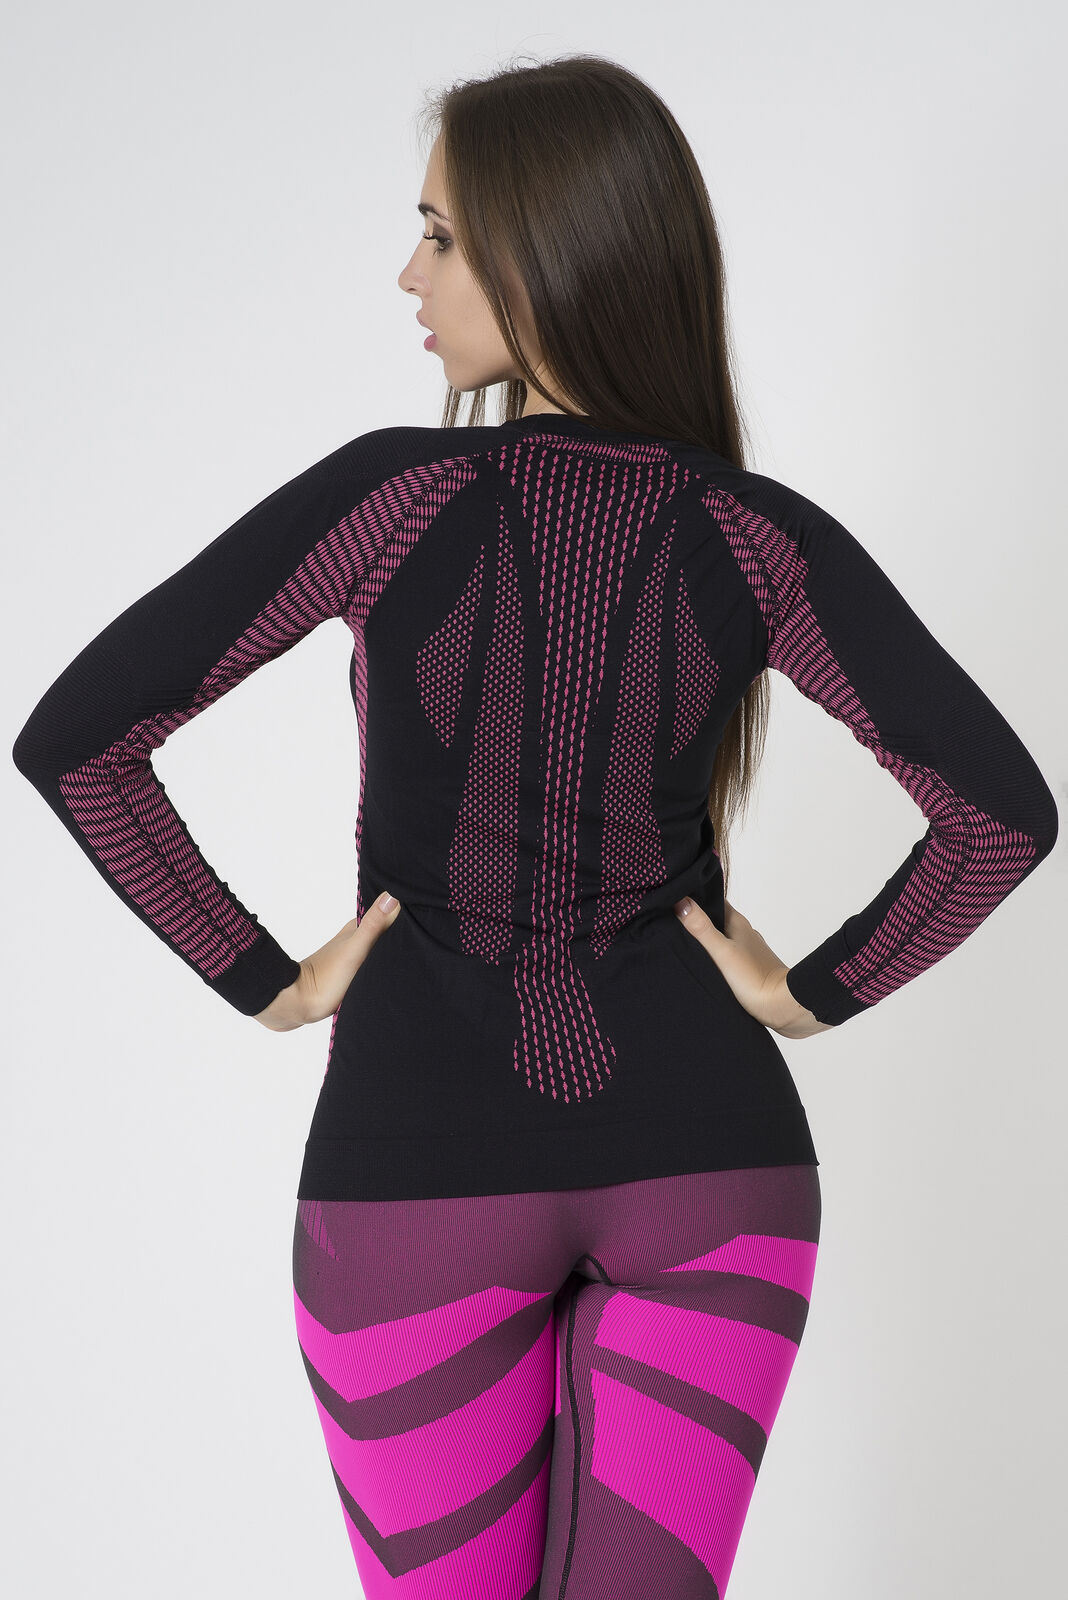 Bellissima-Women-039-s-Athletic-Compression-Long-Sleeve-Shirt-Moisture-Wicking-Top thumbnail 18